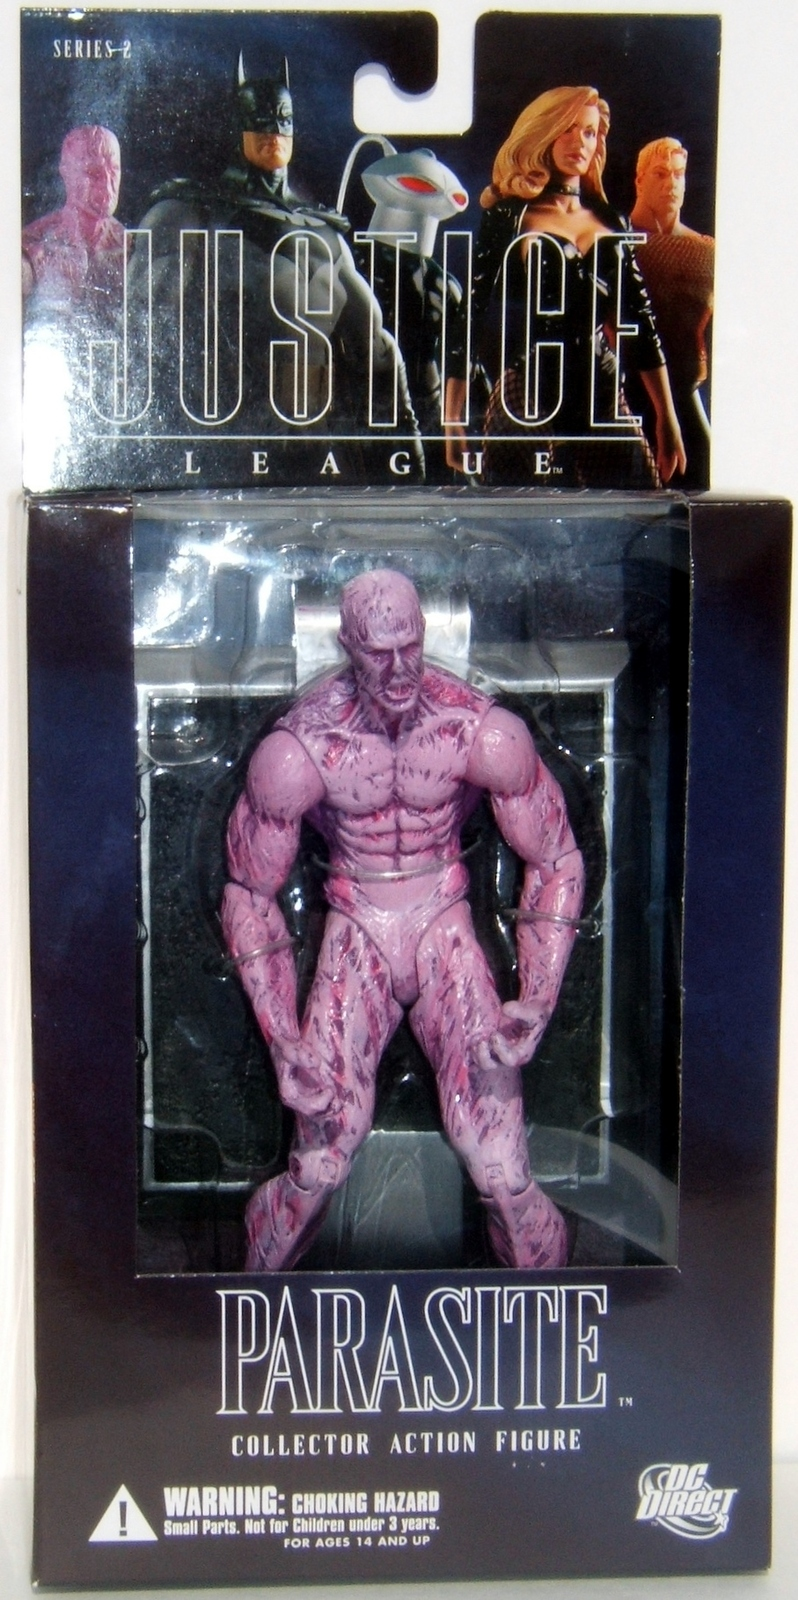 DC Direct Alex Ross Justice League Parasite Series 2 MOC Action Figure